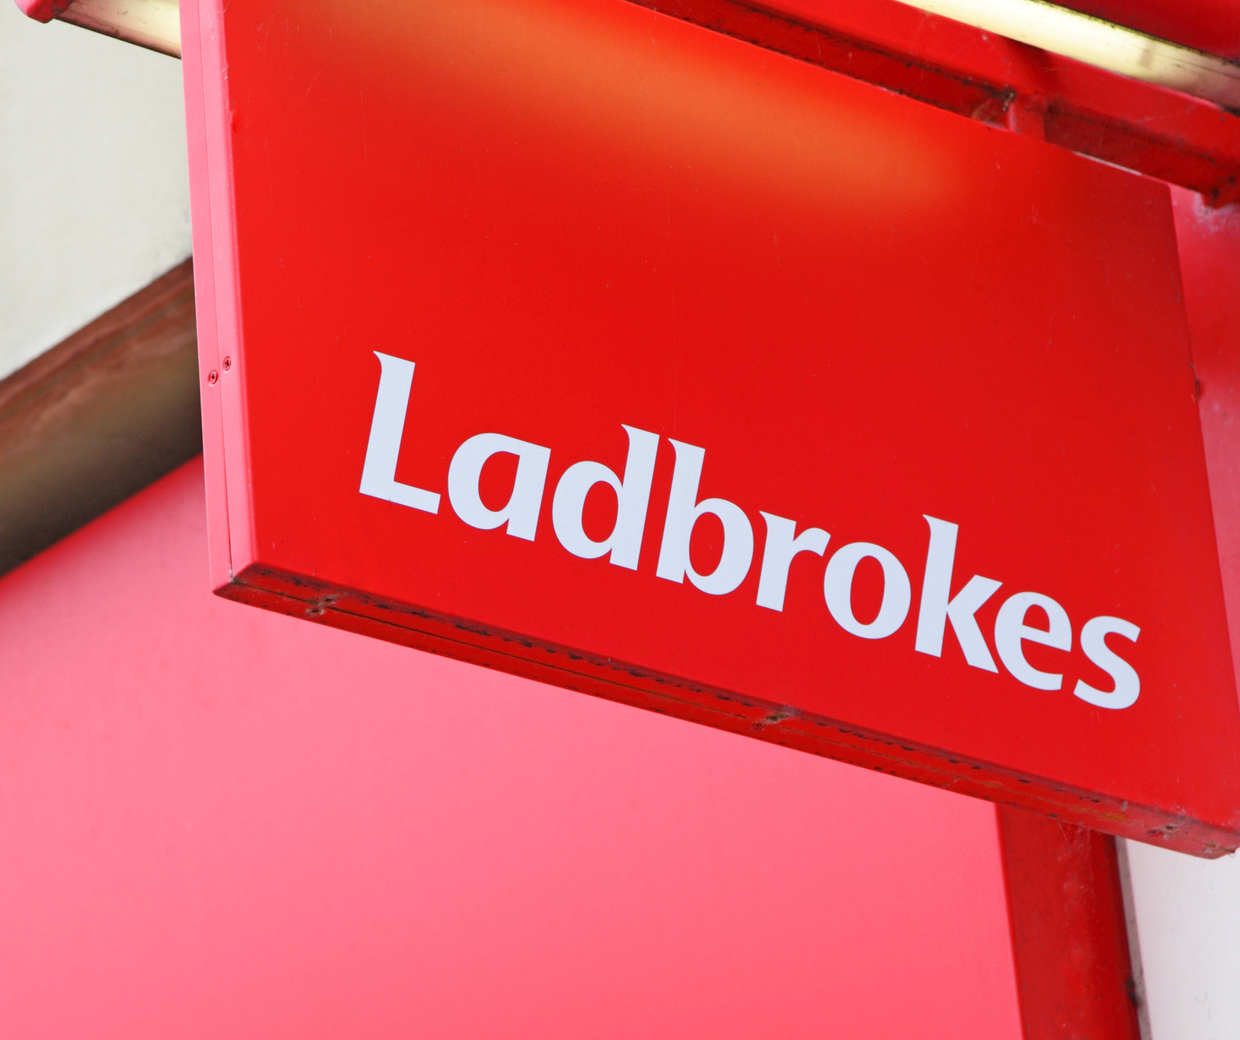 ladbrokes - photo #10